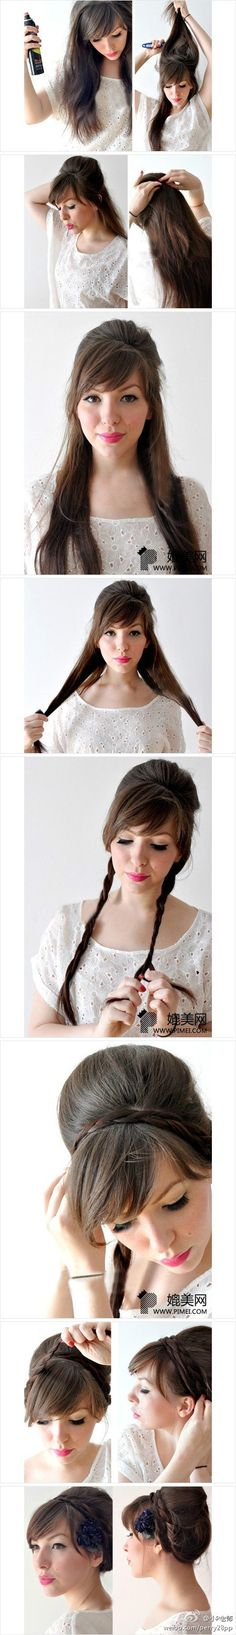 You can recreate several different hairdos with this tutorial! For products and tools to give this look a try, visit Walgreens.com.